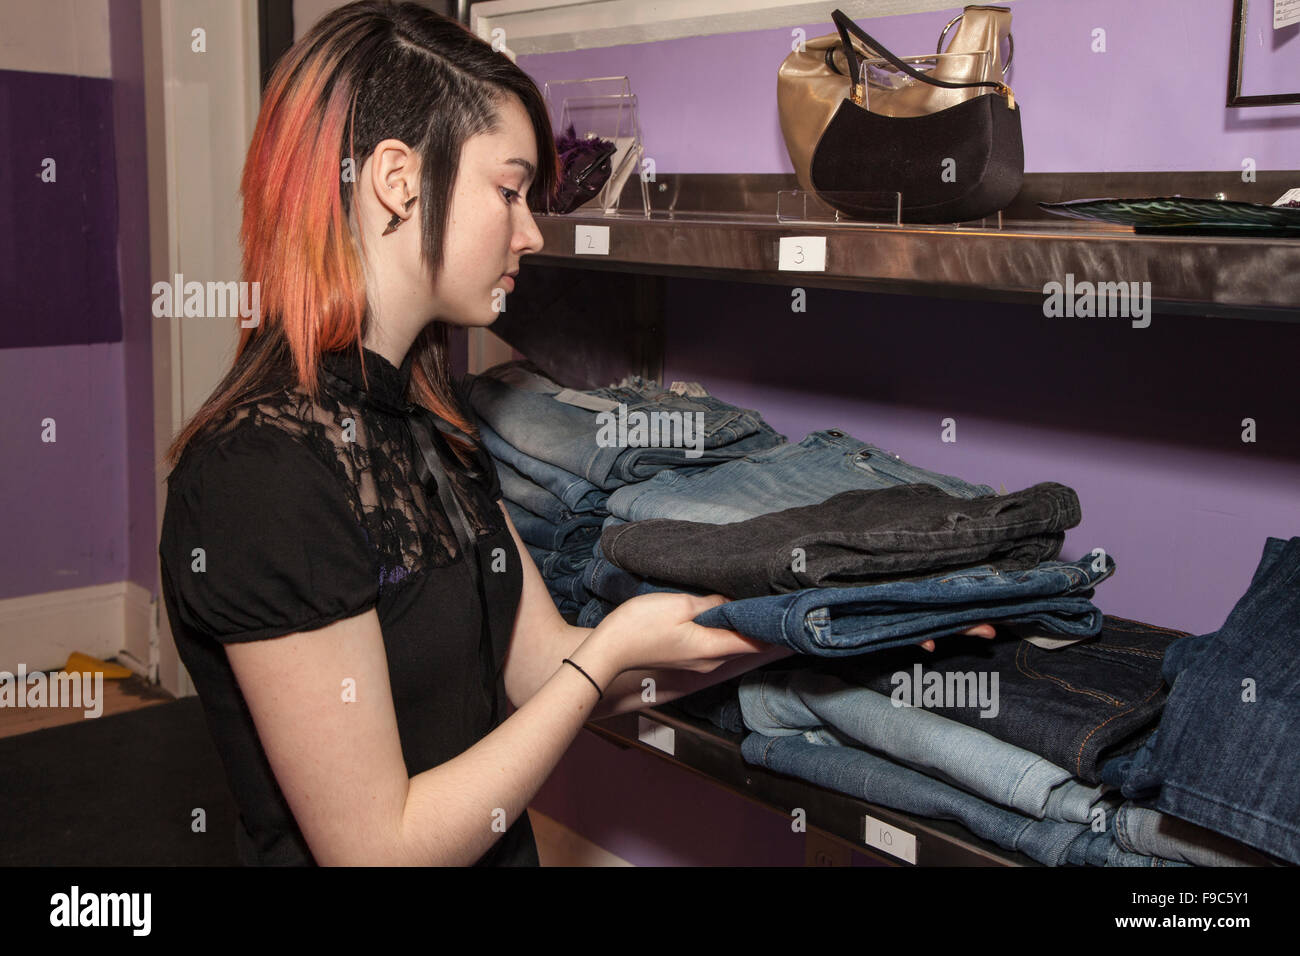 Teenage female clerk adjusting stack of jeans. Express Yourself Clothing Shop Trunk Show. St Paul Minnesota MN USA - Stock Image